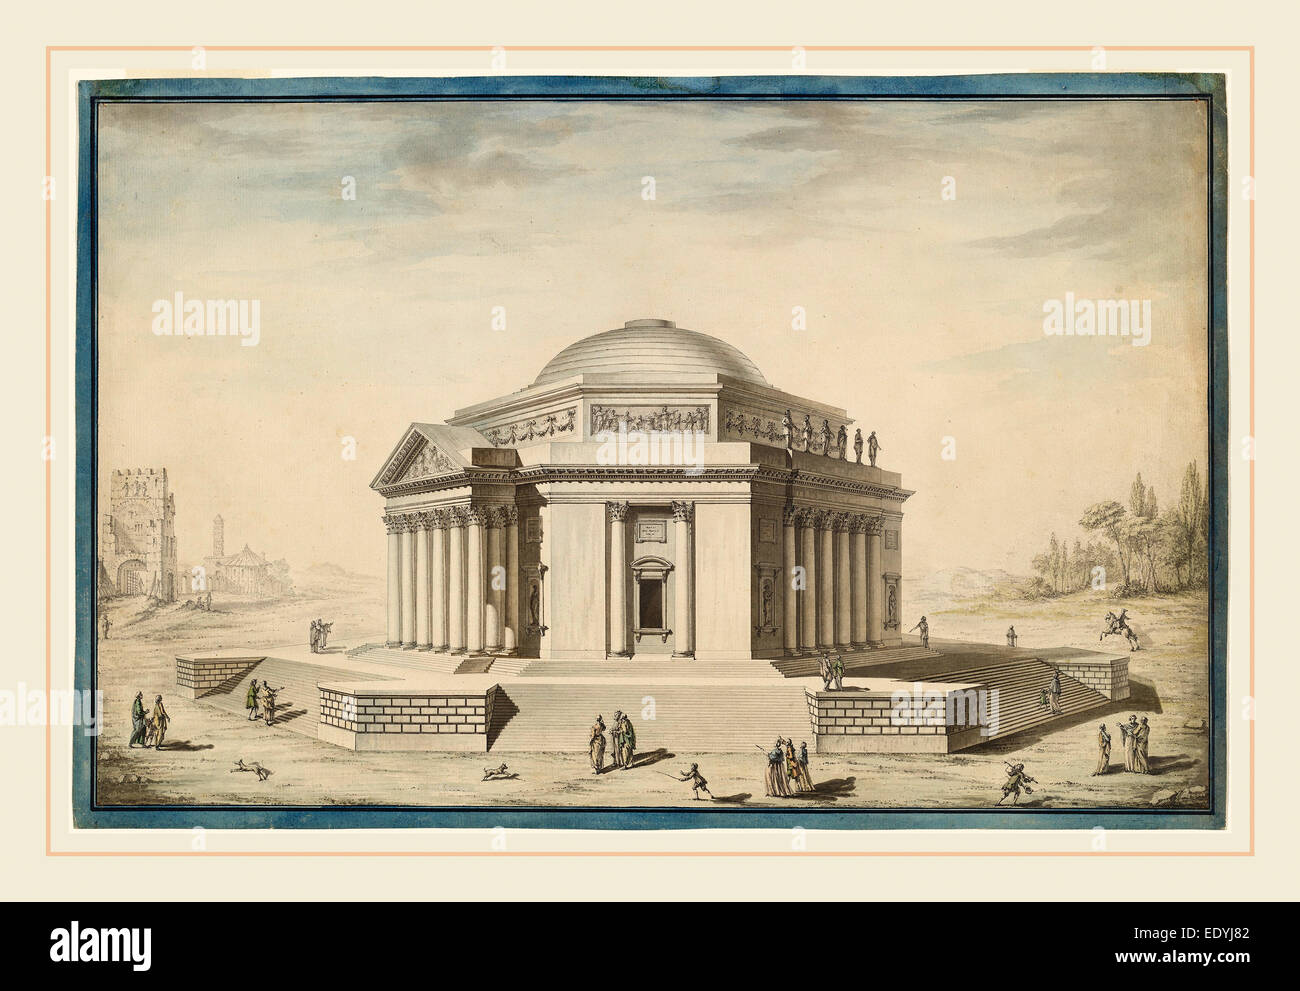 Louis Gustave Taraval, Hexagonal Temple in an Italianate Landscape, French, 1739-1794, c. 1780, pen and black ink - Stock Image